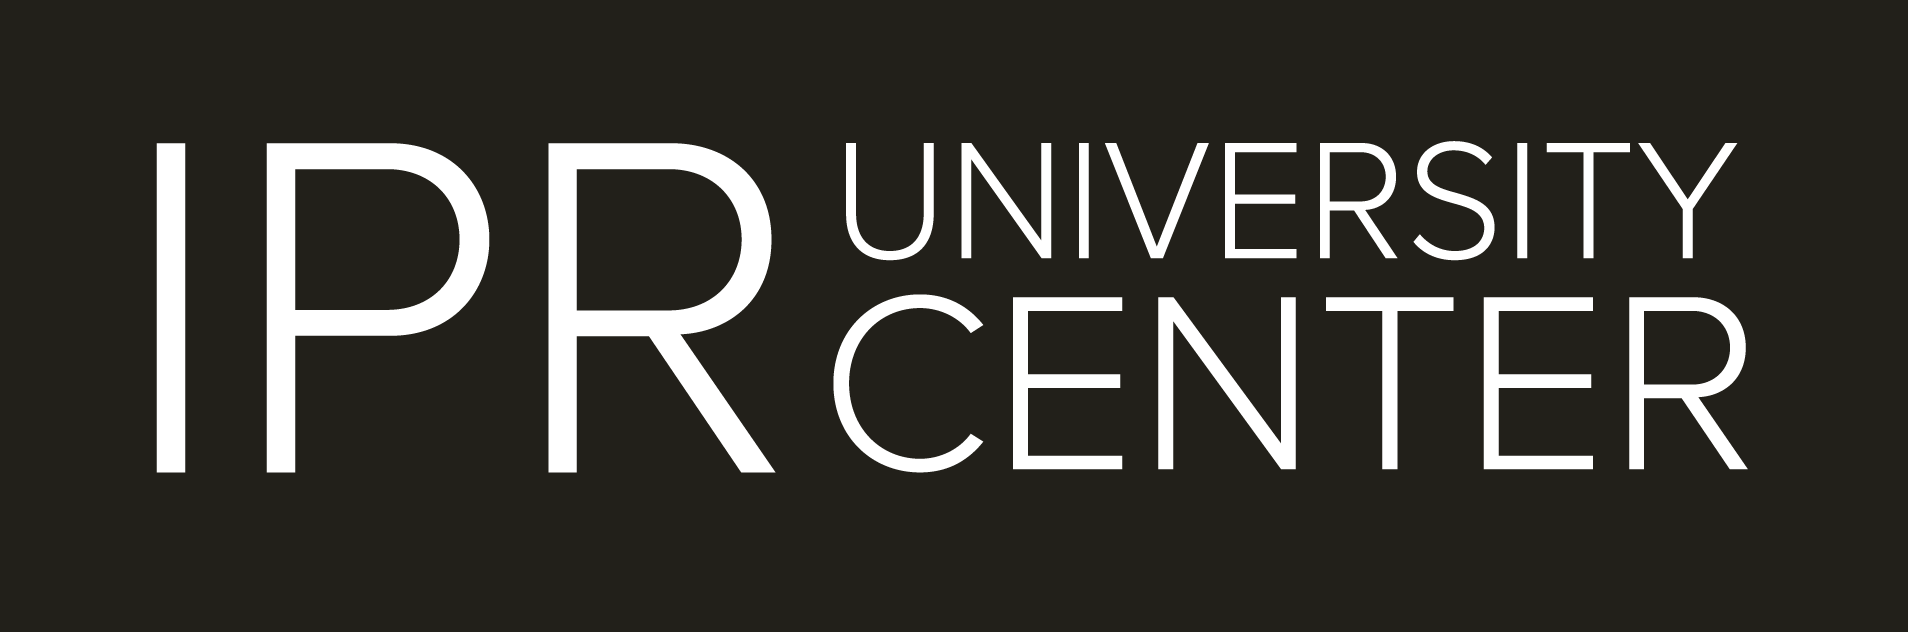 IPR-University-Center-logo-rgb